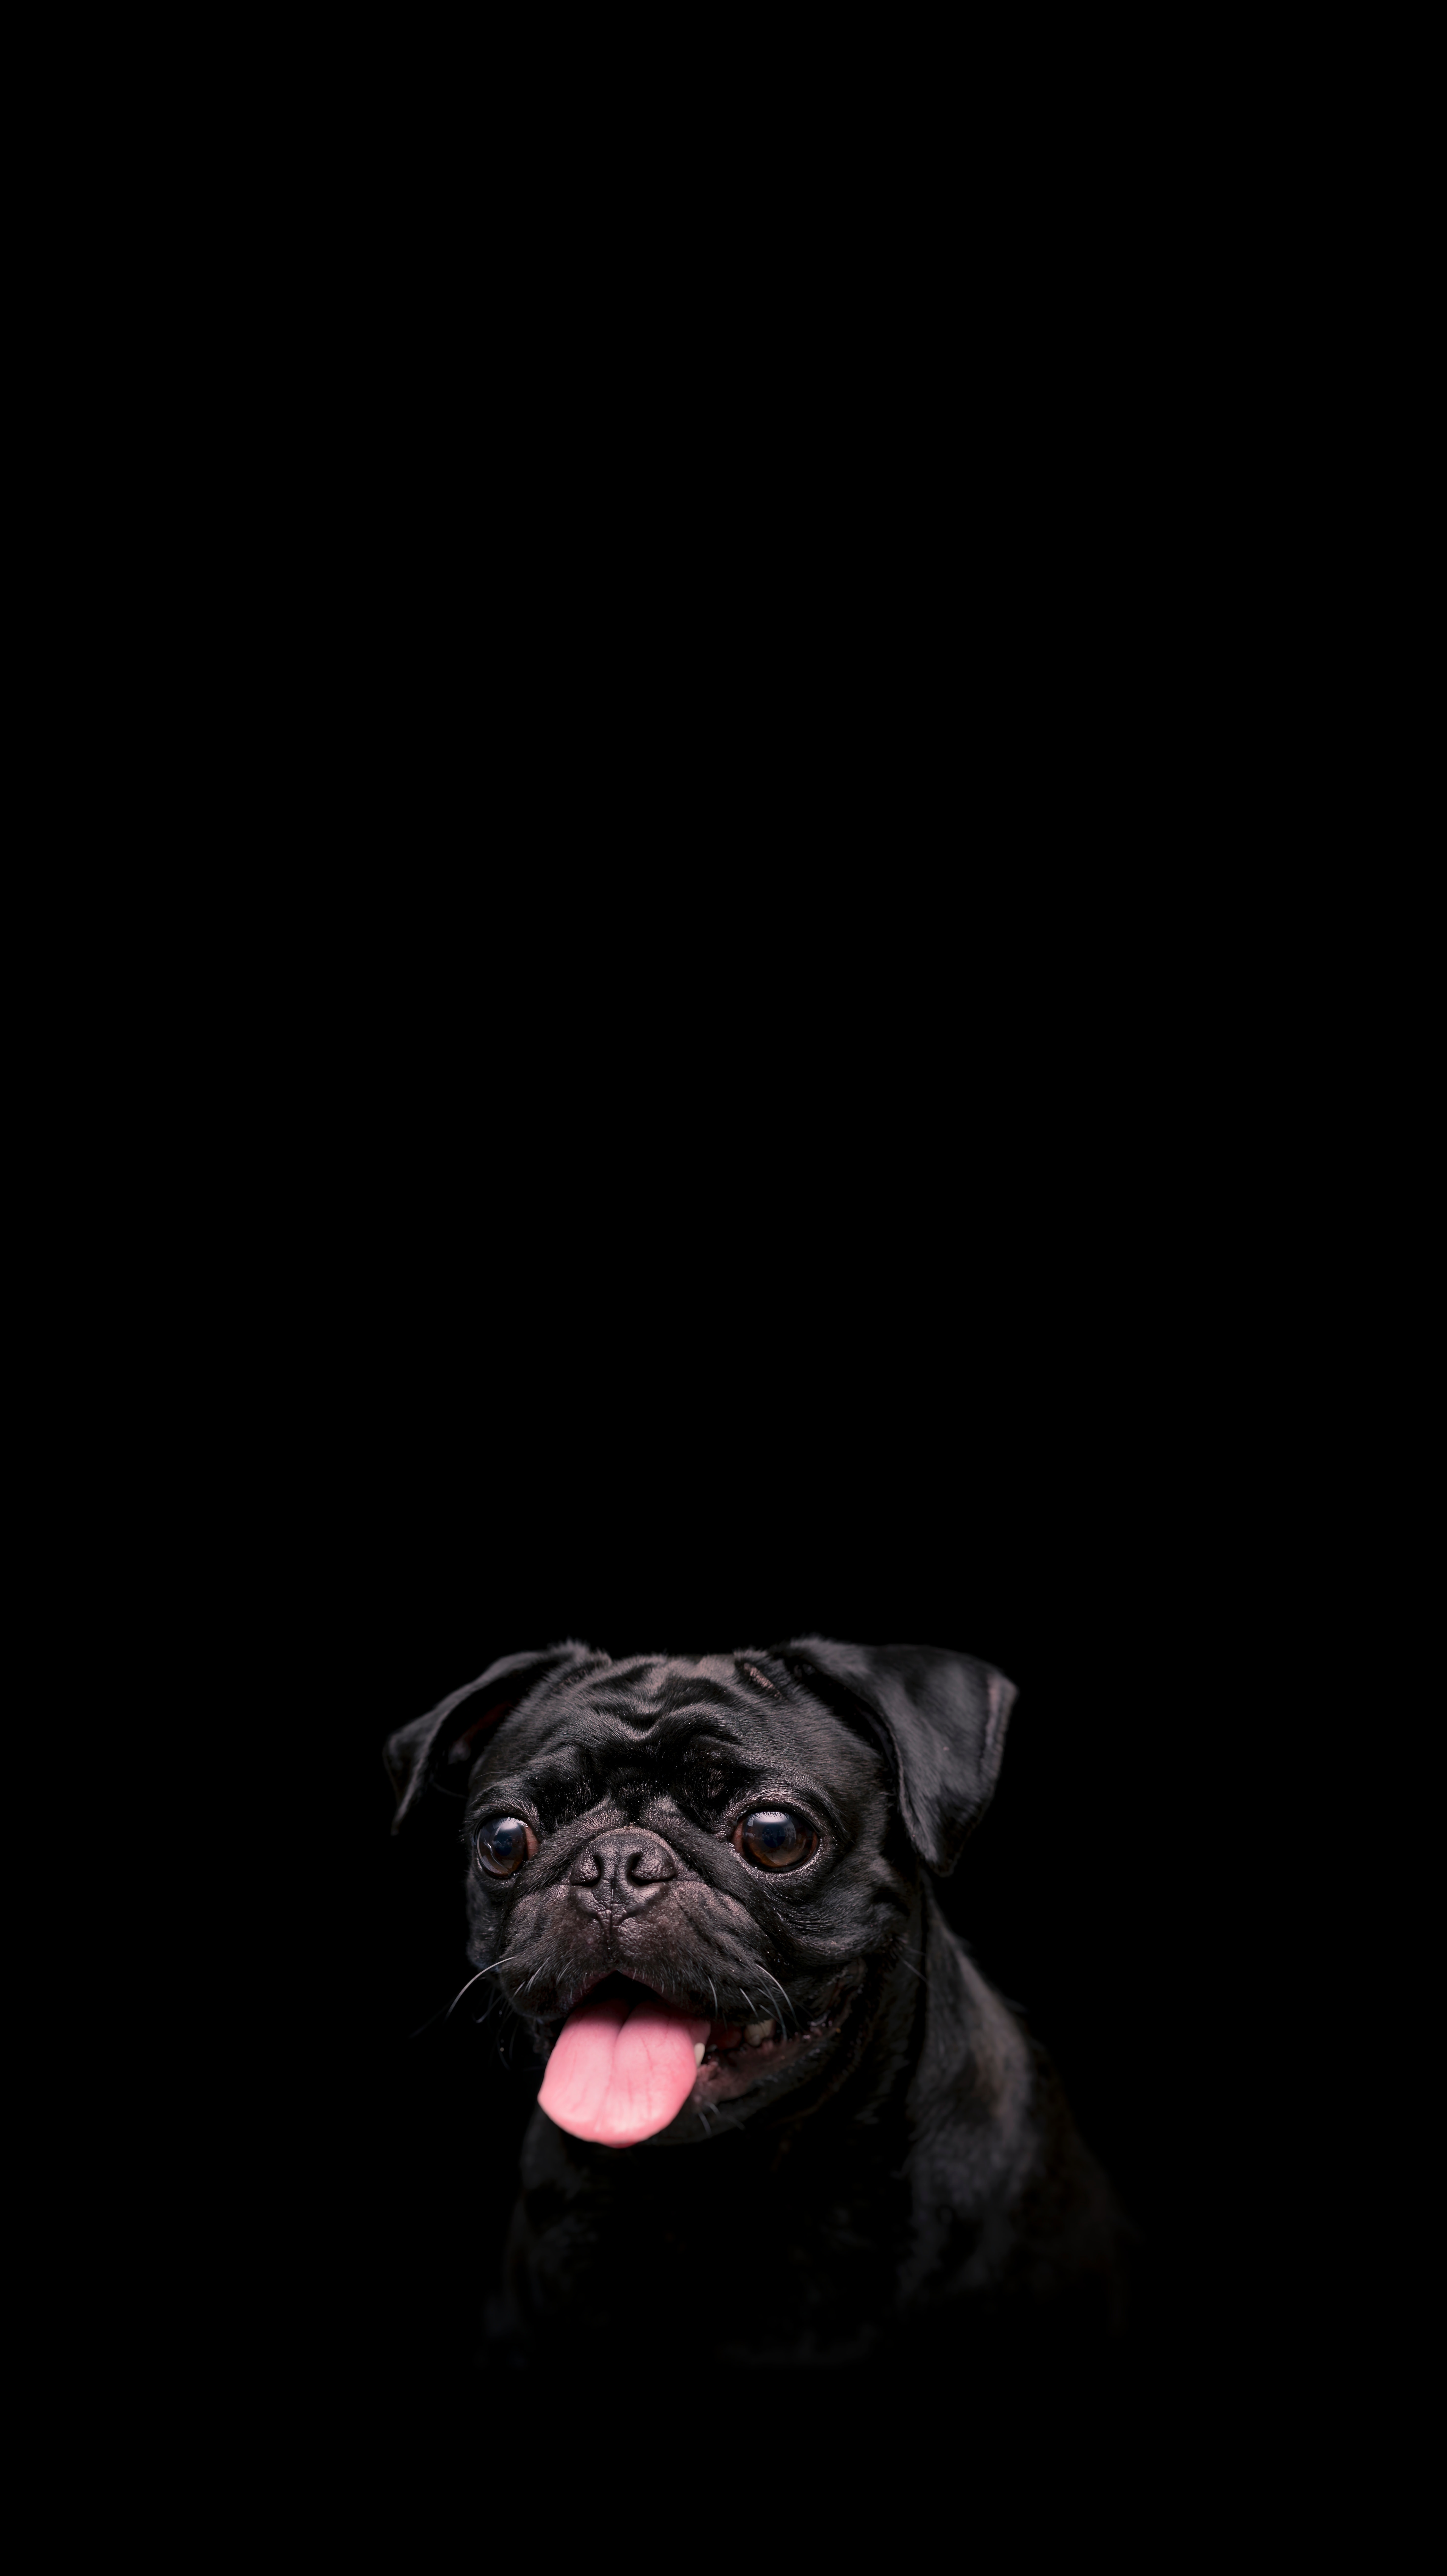 89805 download wallpaper Animals, Pug, Dog, Pet, Protruding Tongue, Tongue Stuck Out screensavers and pictures for free